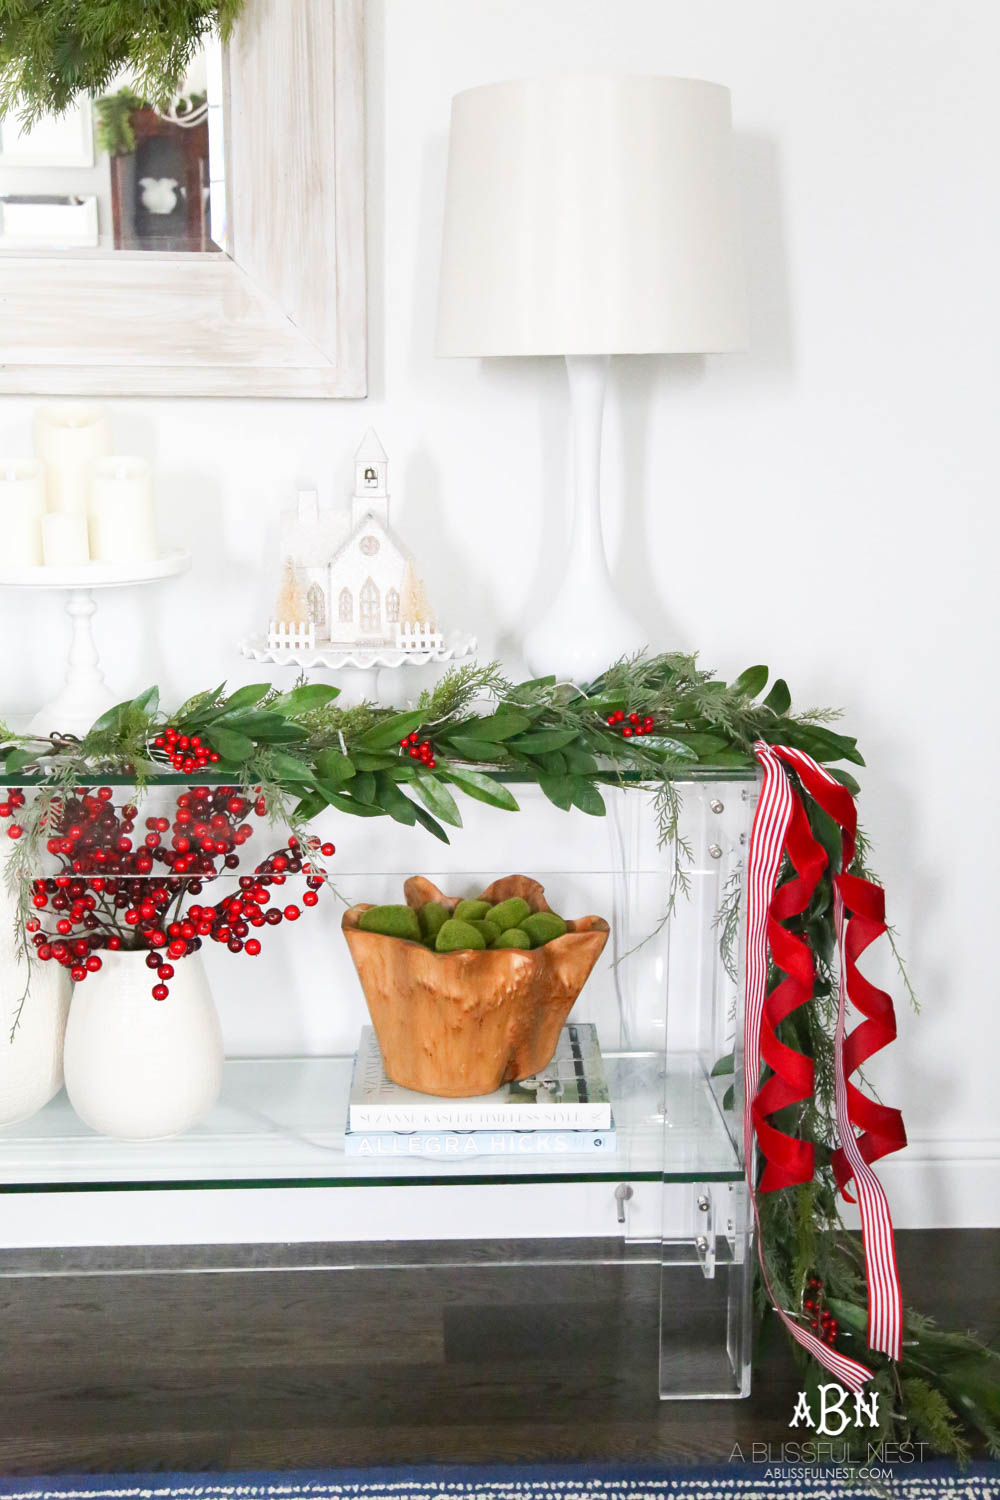 Pop holiday berries into your existing décor. Beautiful pop of color in this classic Christmas décor in this entryway. #christmasentryway #christmasentry #christmasentrydecor #christmasentrywayideas #christmashometour